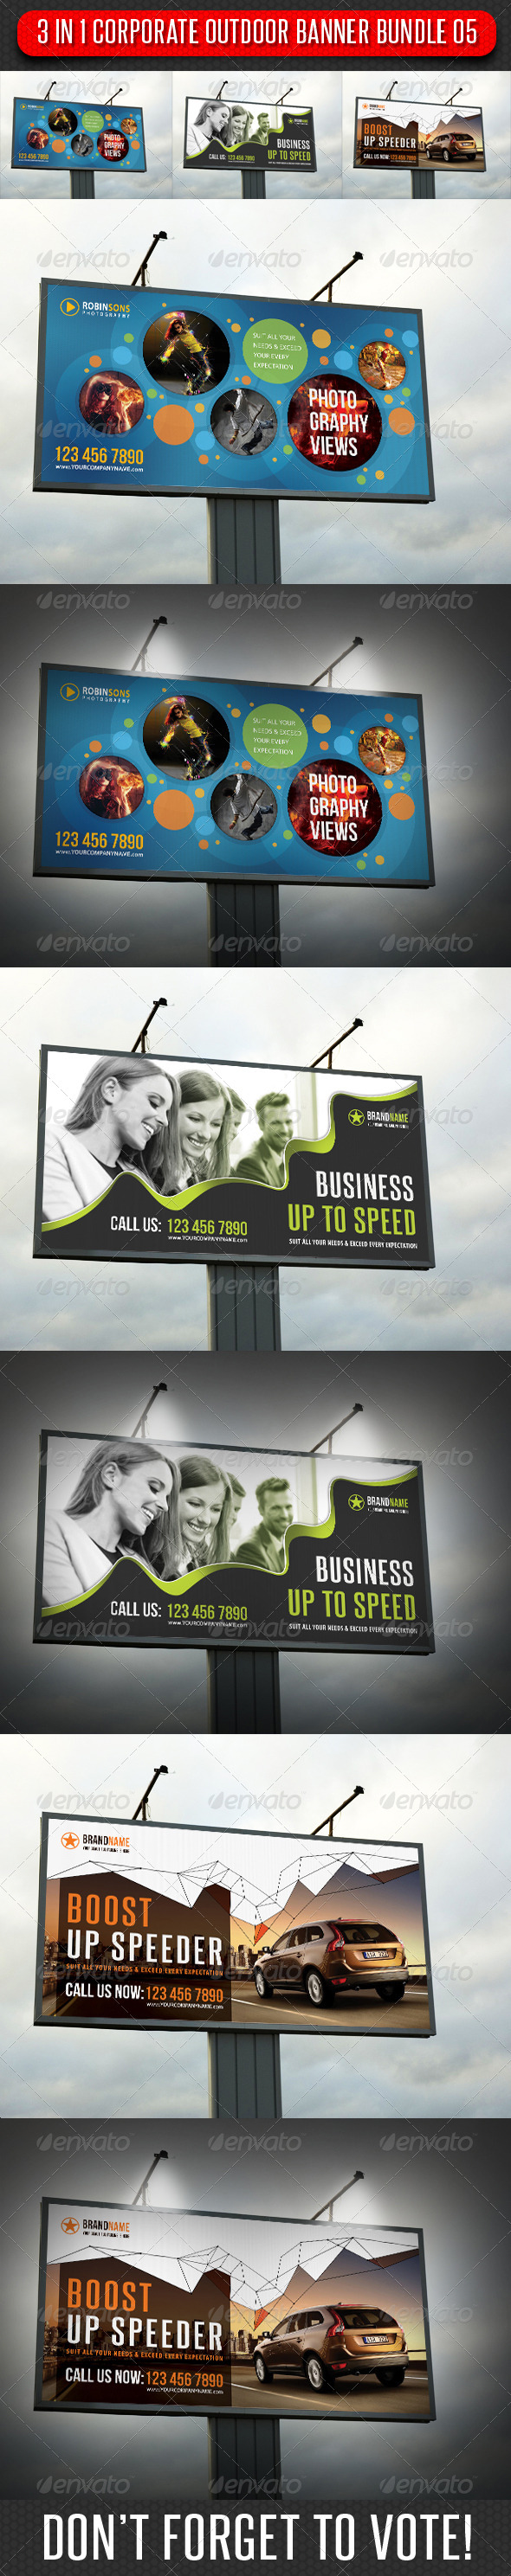 3 in 1 Corporate Outdoor Banner Bundle 05 - Signage Print Templates